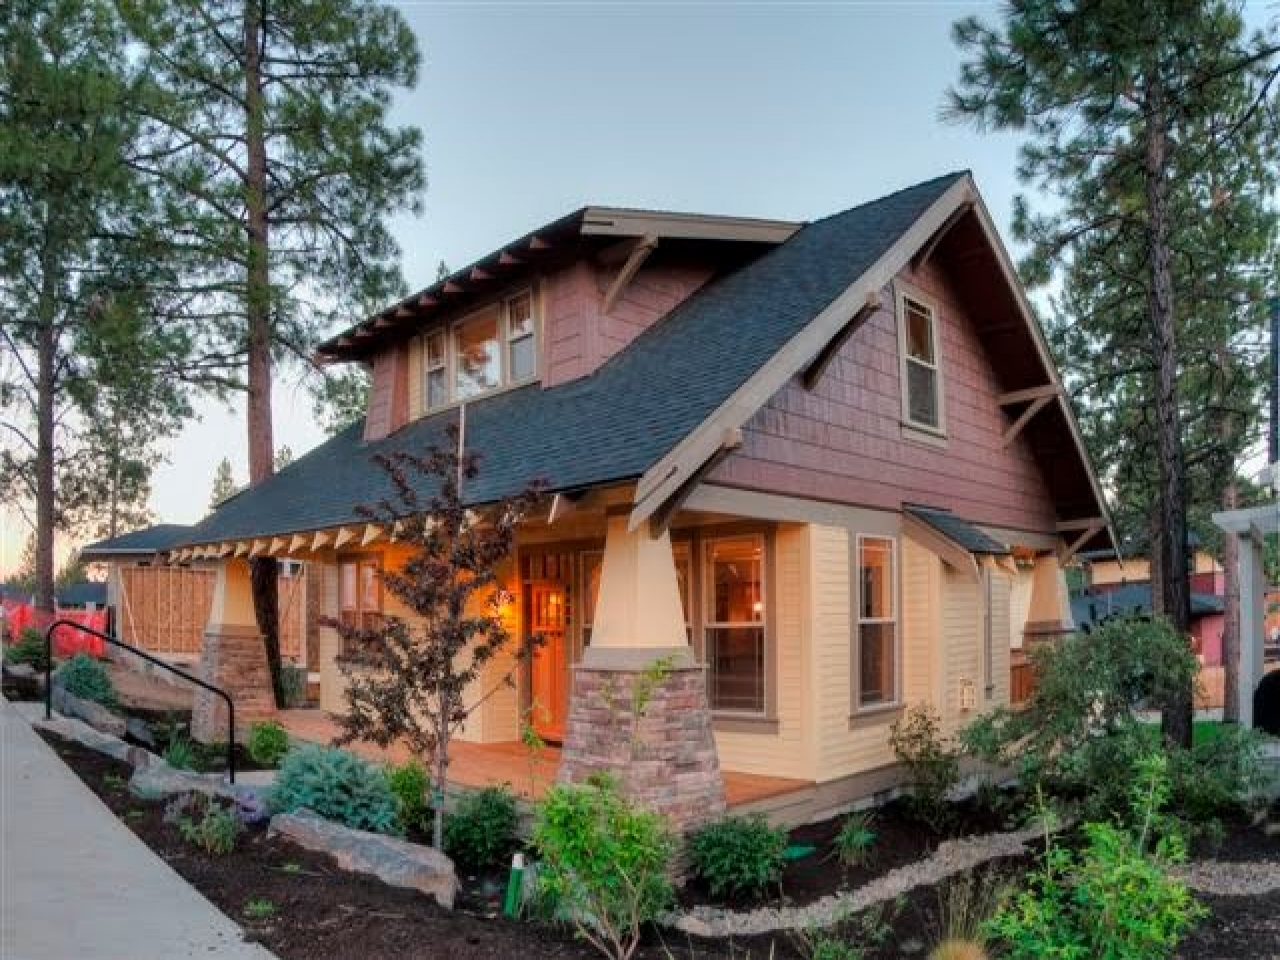 Best craftsman style house plans ranch style homes for Best ranch house plans 2016